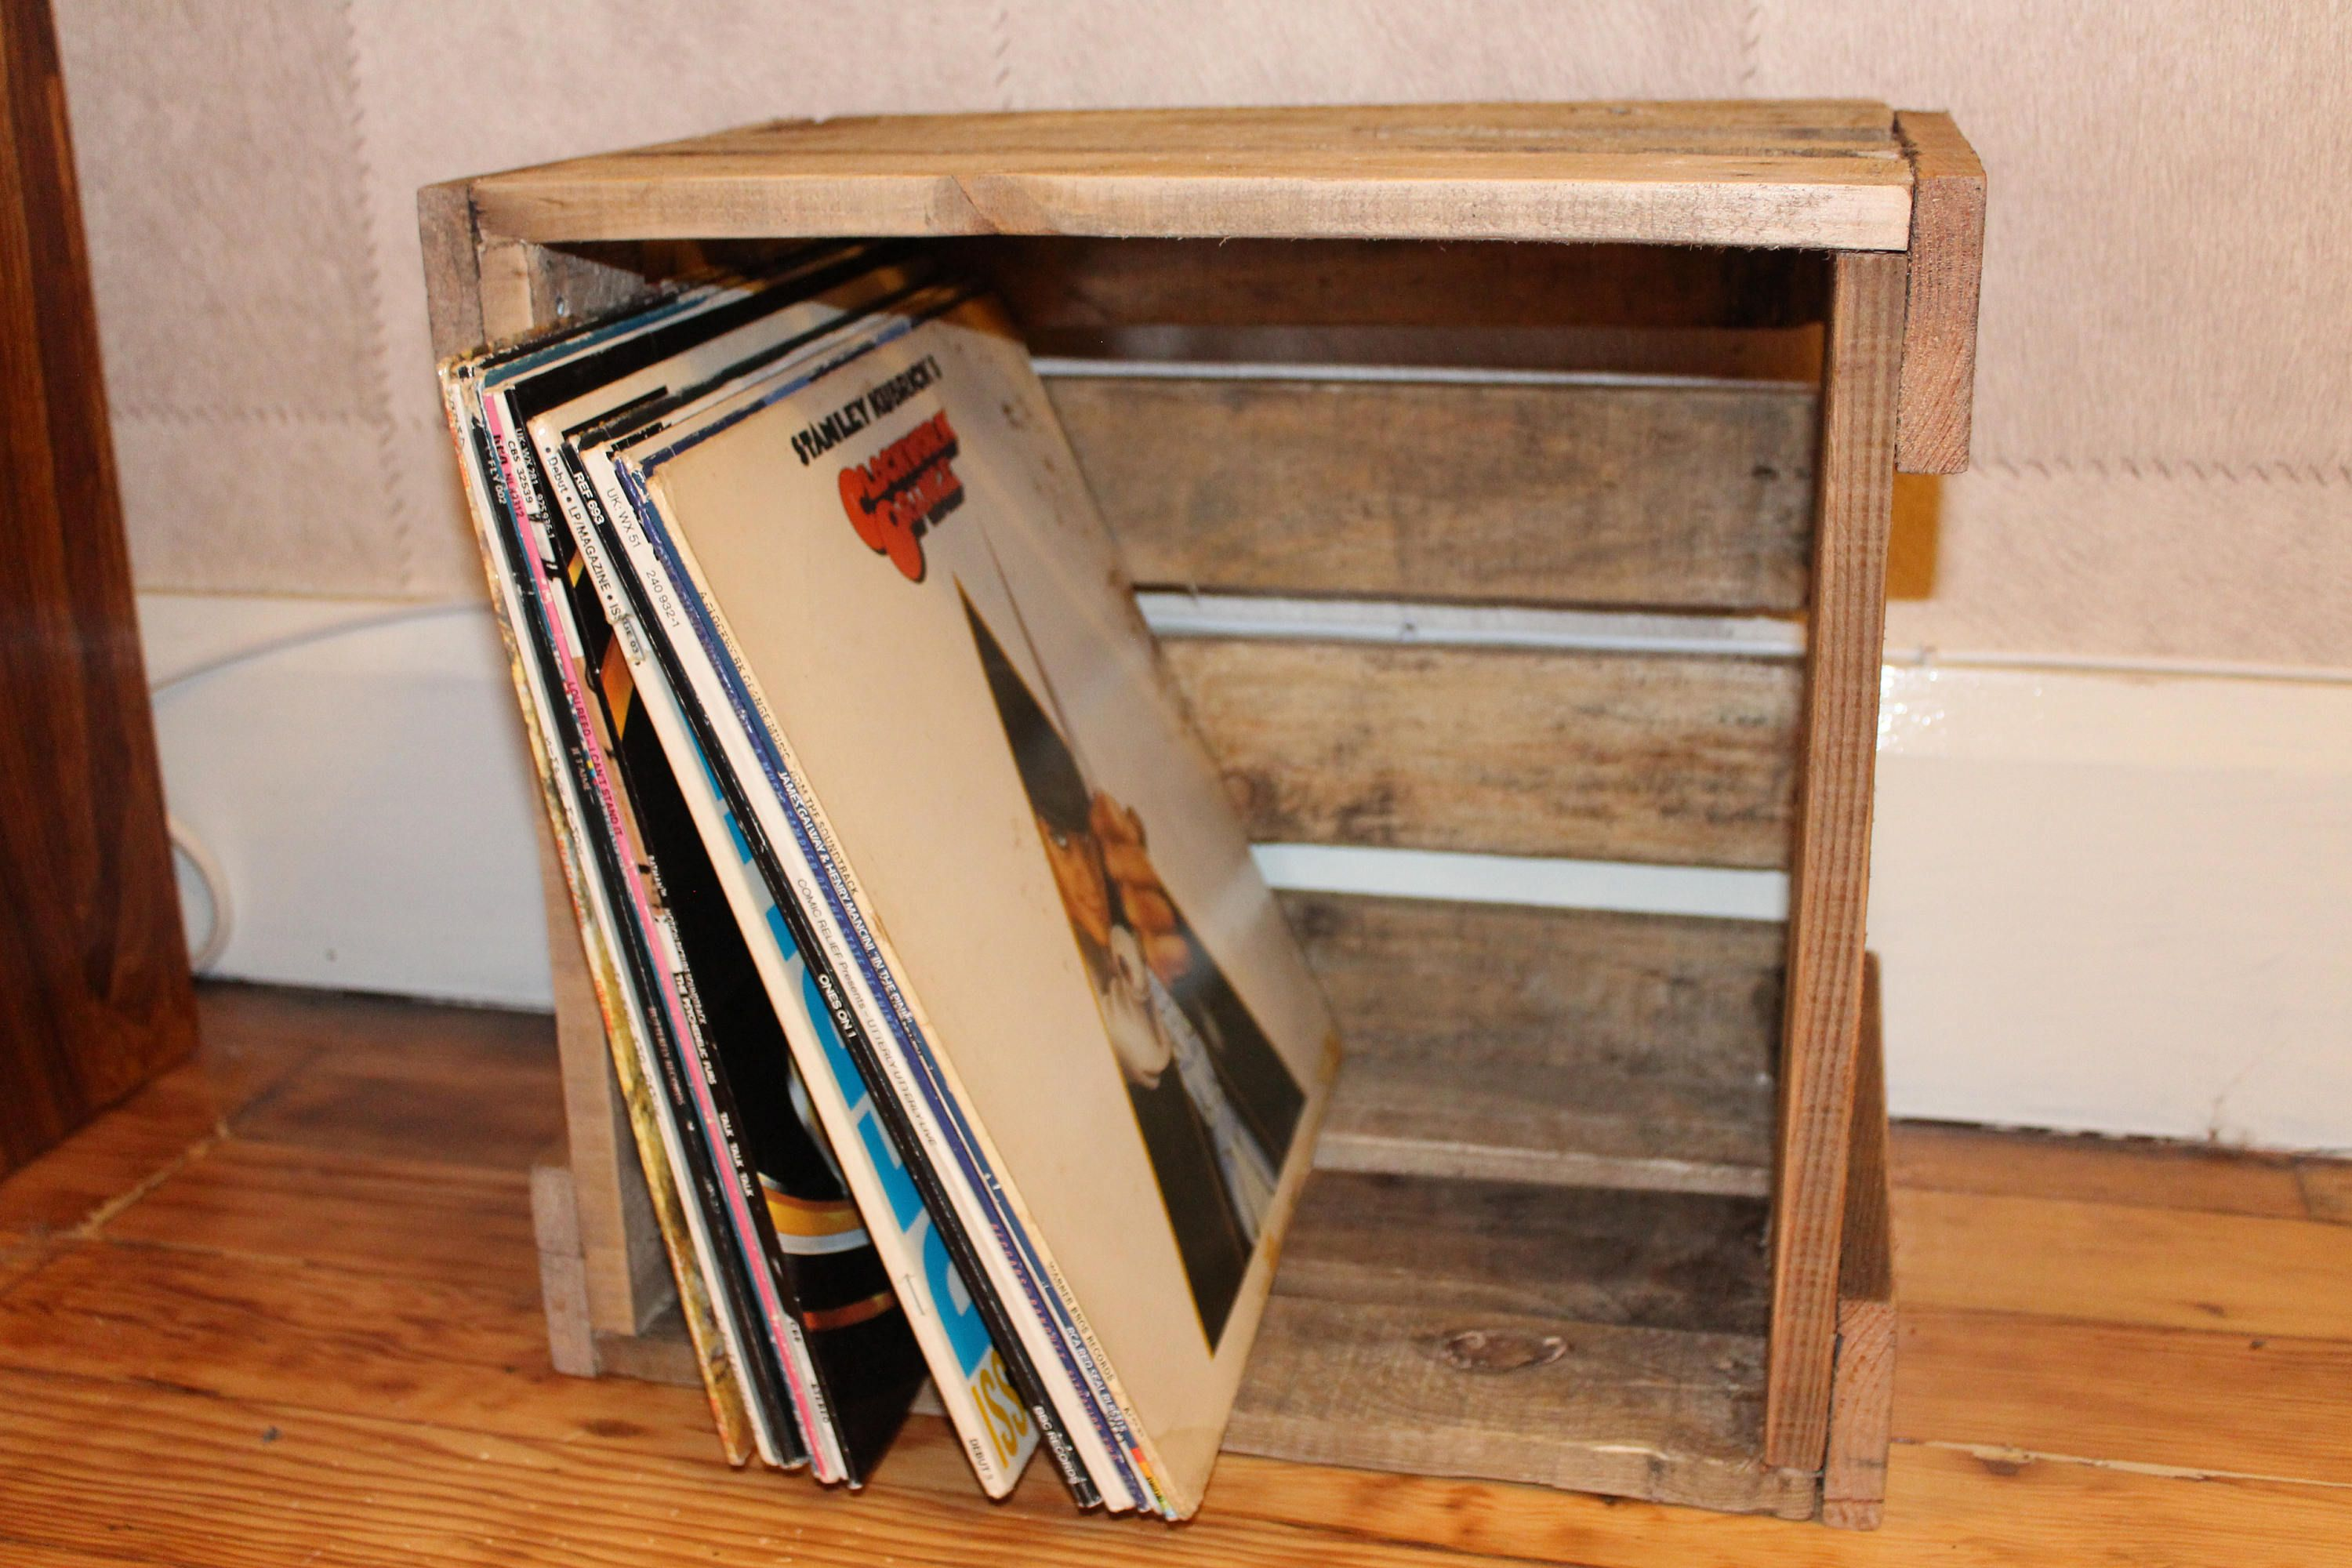 Vinyl Record Lp Reclaimed Rustic Wooden Pallet Handmade Storage Box Crate Easily Stackable For Your Albums Choice Of Storage Pallet Furniture Wooden Pallets